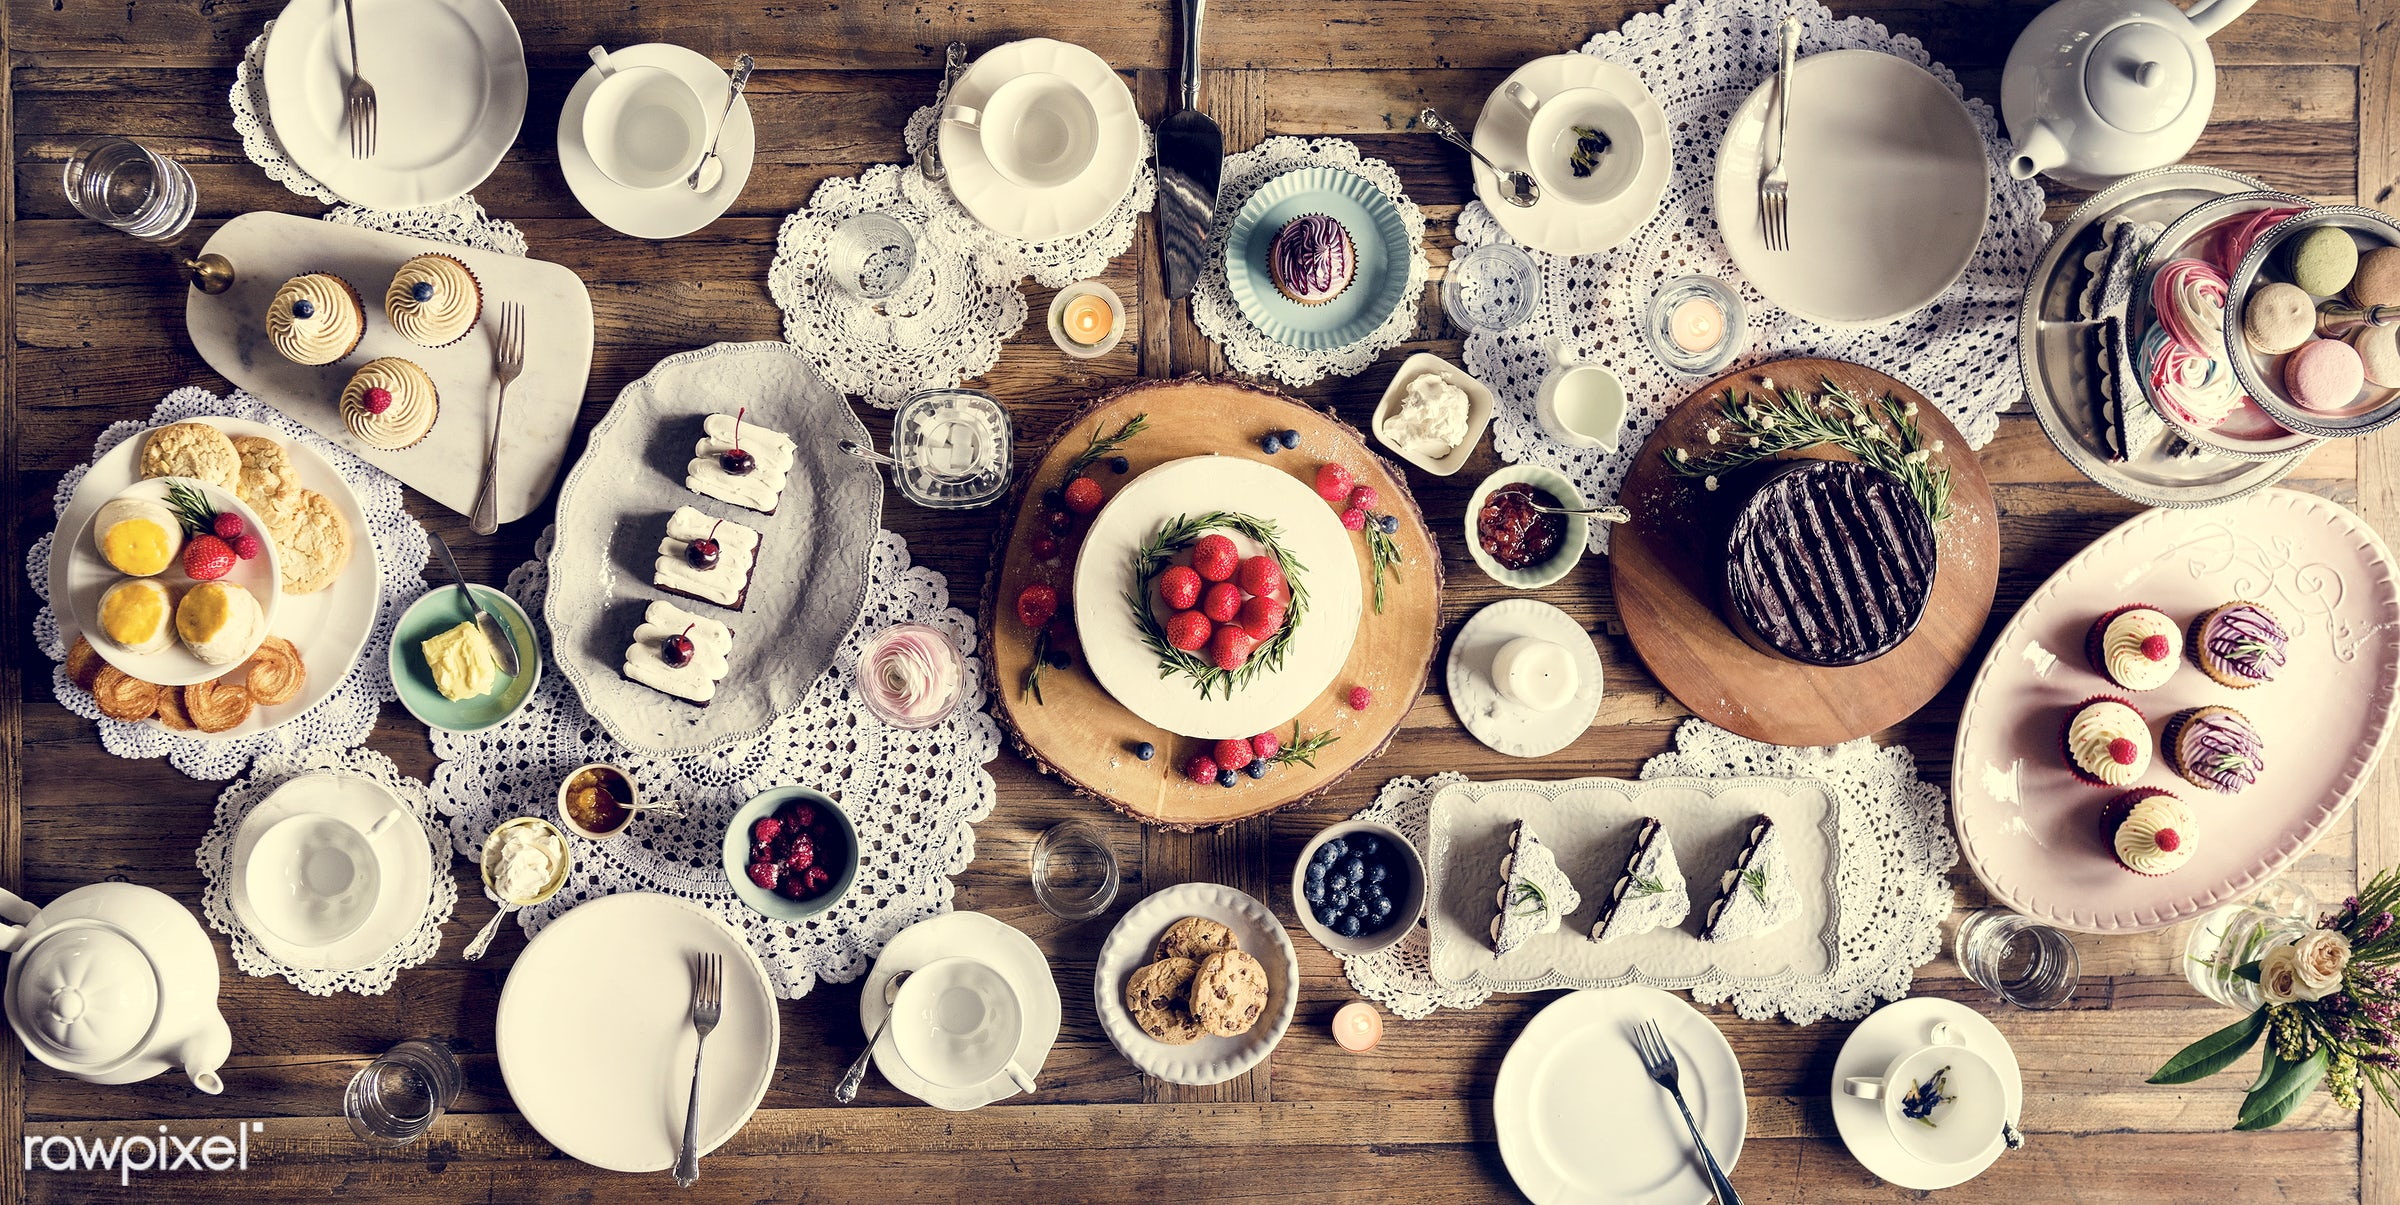 tea time, nobody, relax, occasion, party, together, bakery, event, gather, celebrate, dessert, cake, sweets, happiness,...